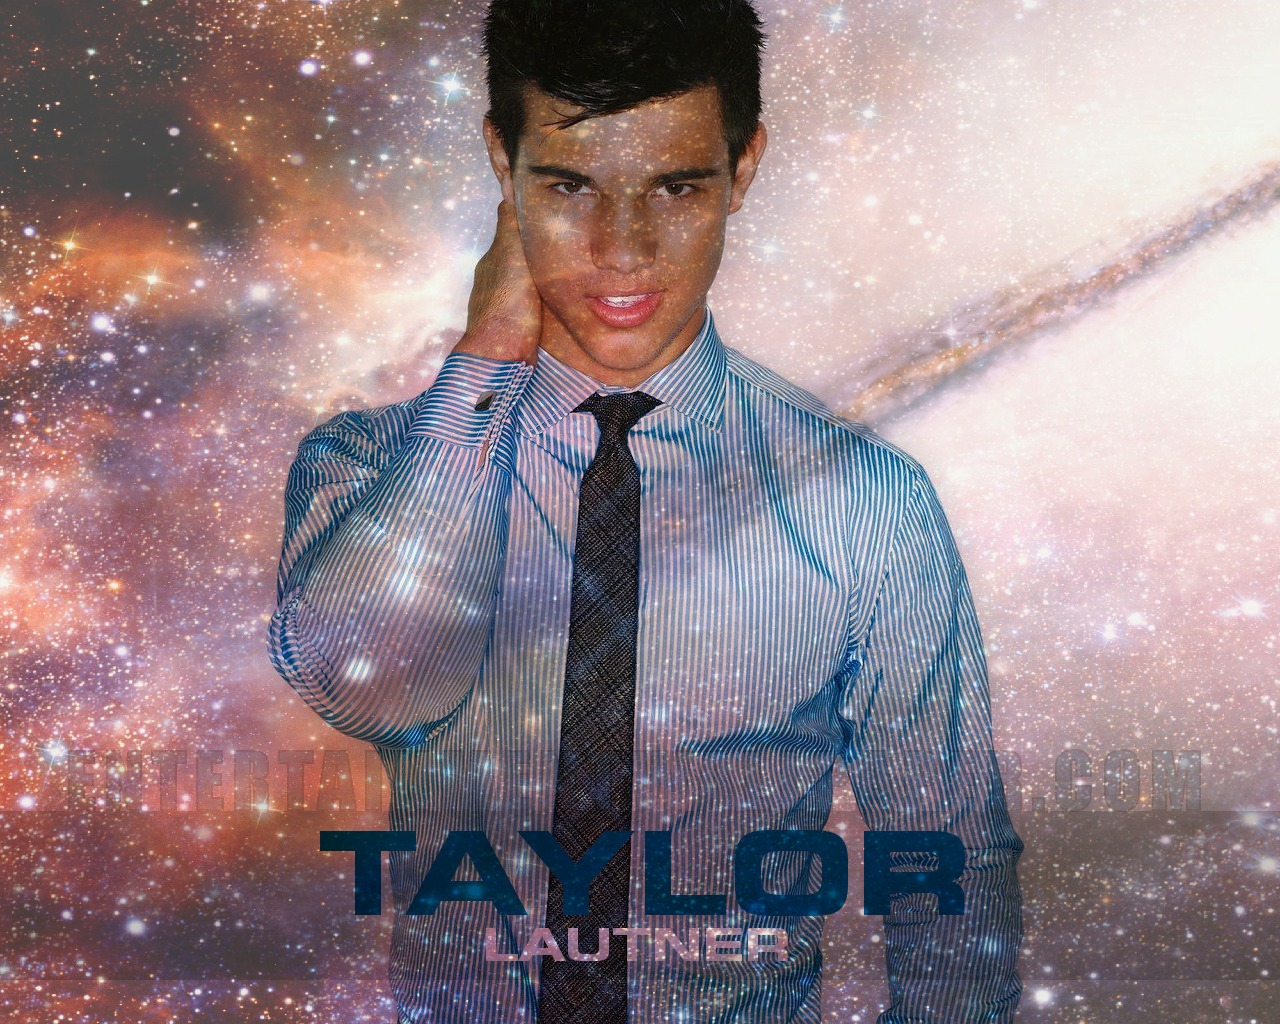 Taylor Lautner - Photo Colection